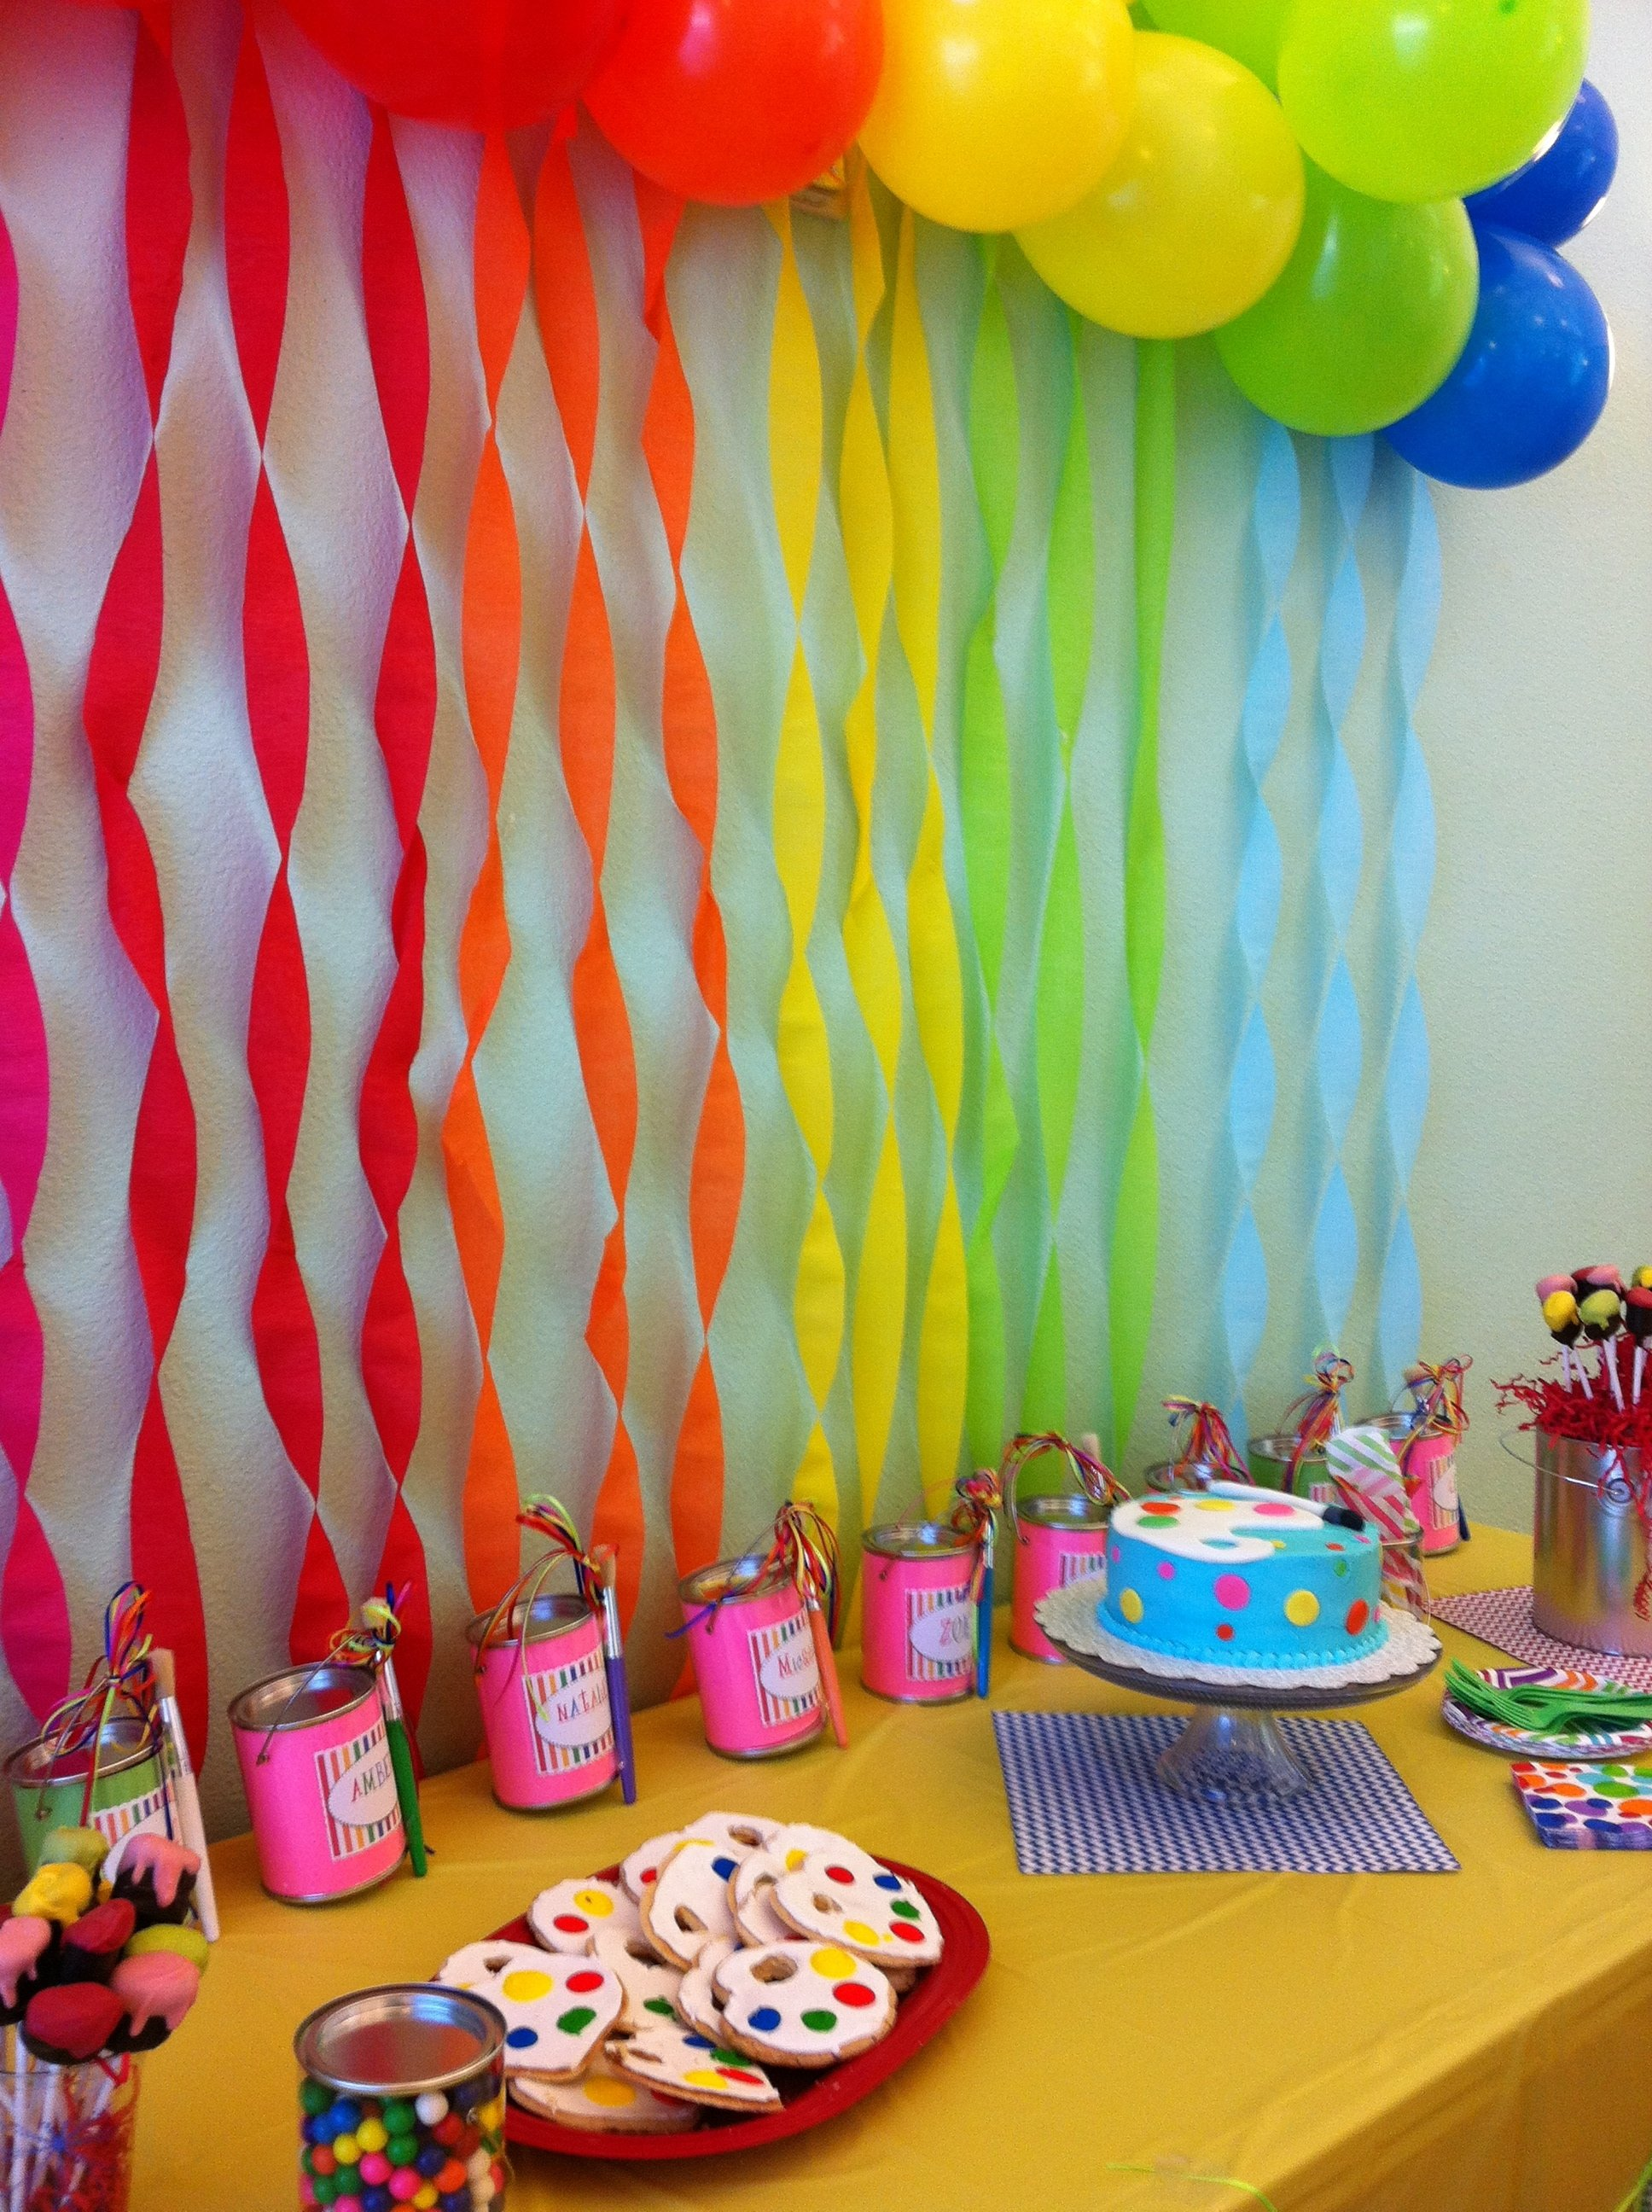 10 Nice 10Th Birthday Party Ideas For Girls 8 year old girl birthday art party art party pinterest art 57 2021